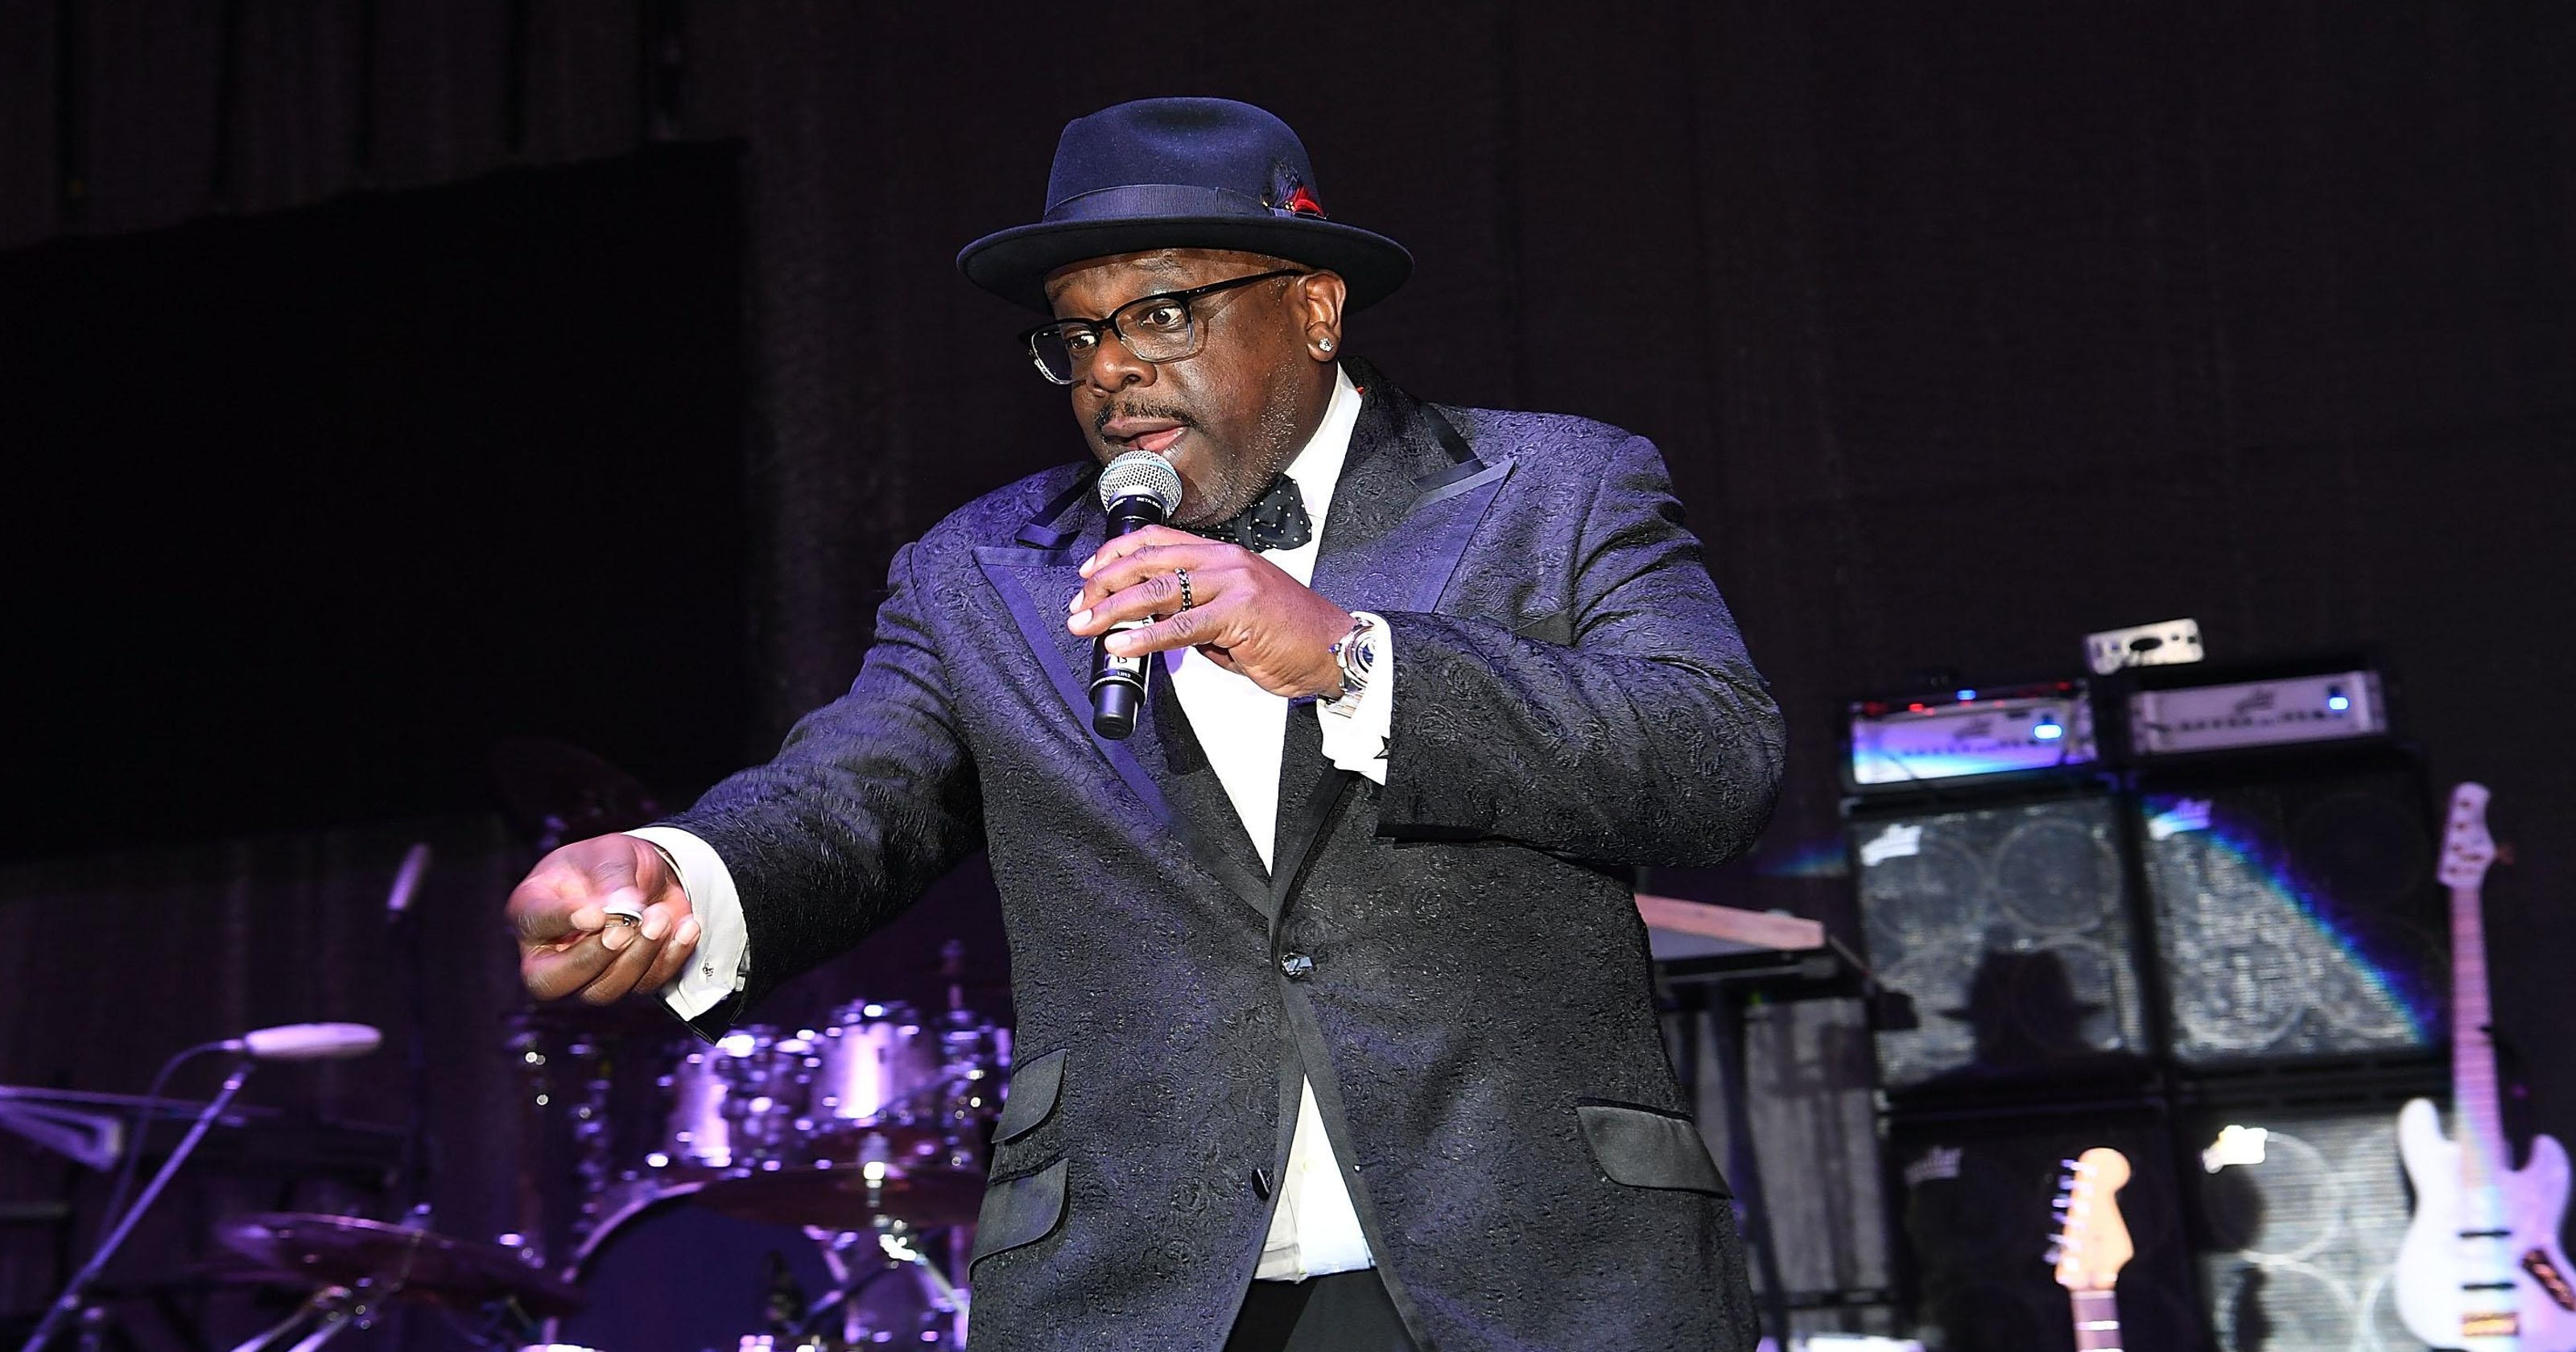 d8ec76a862641 Detroit audiences are special to Cedric the Entertainer